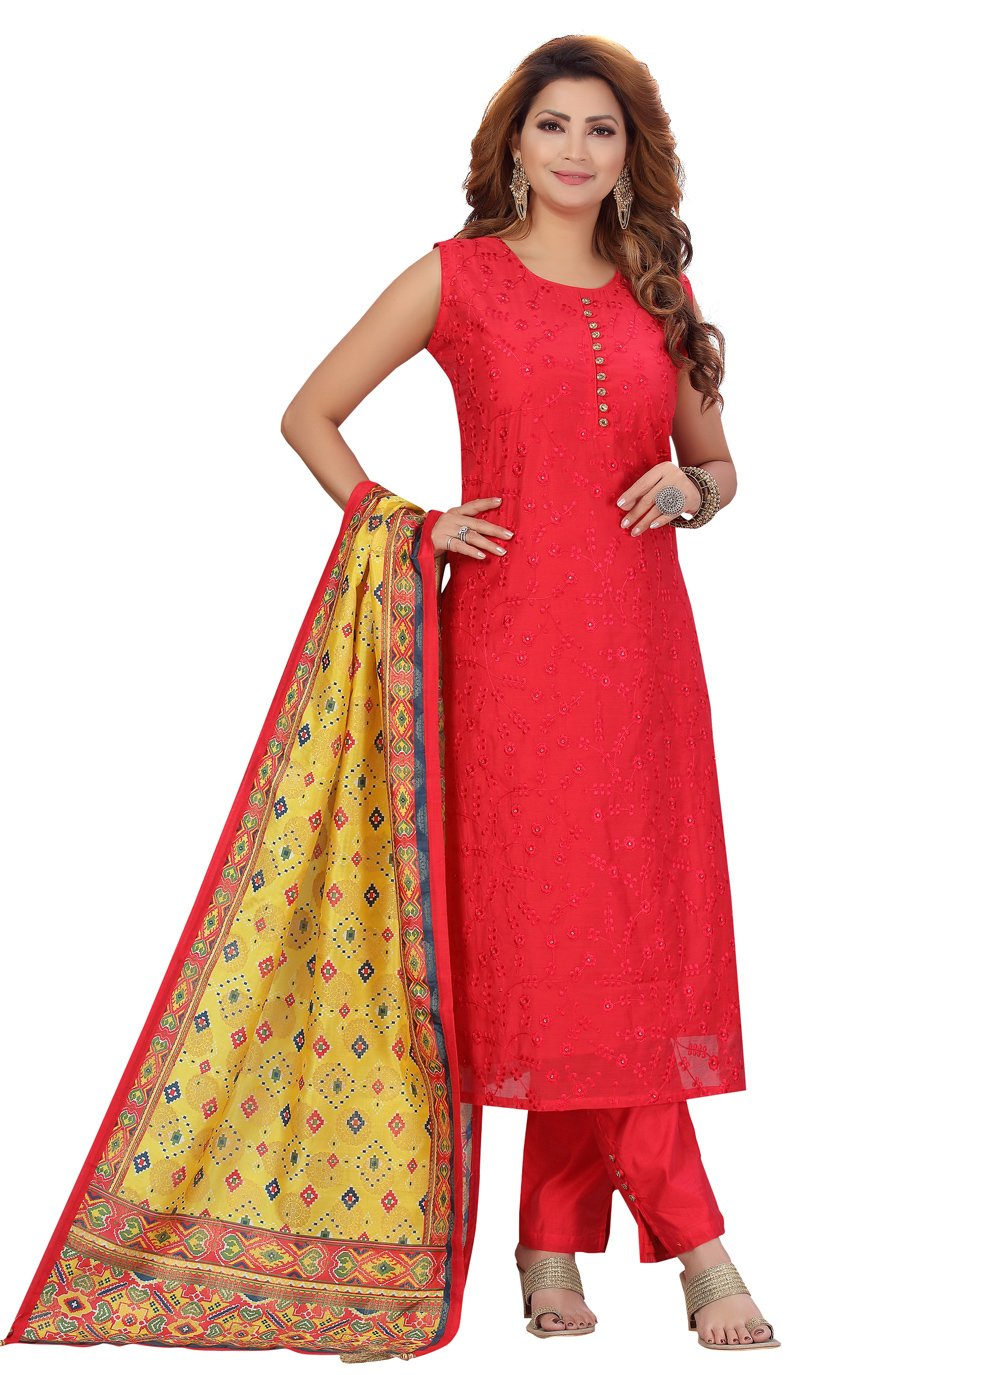 Chanderi Fancy Pant Style Suit in Red